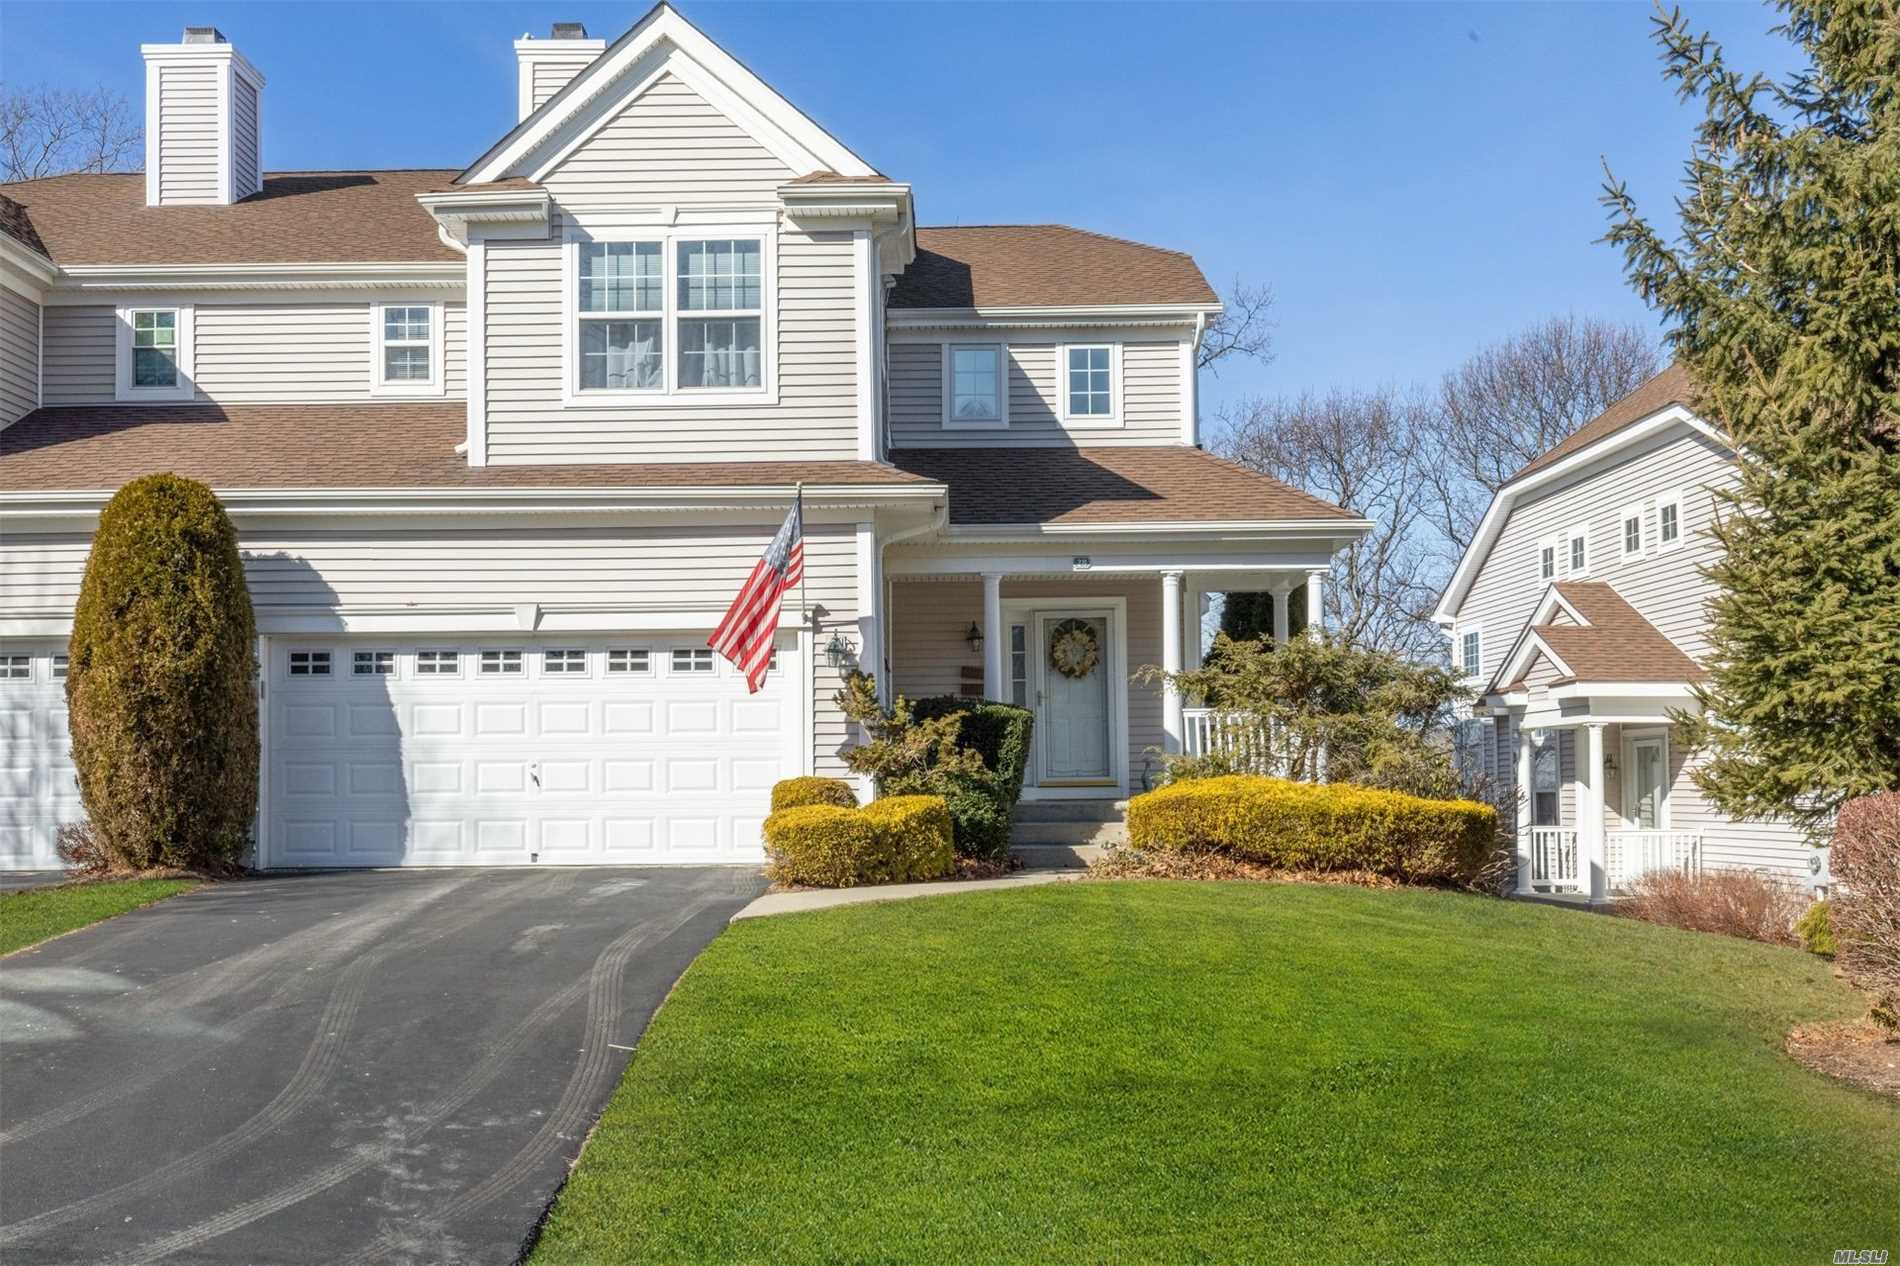 Beautiful Sand Dune Condo In Maidstone - 2 Water Views, On The Pond & Winter Water Views Of Li Sound, Newer Eik W/Stainless Appliances, Trex Deck Off Liv Rm W/Winter Water View Of Li Sound, Master Suite, Spacious Fin Bsmt W/Rec Rm, Study, Bath, Walkout To Patio - Enjoy The East End Of Long Island & Its Amenities